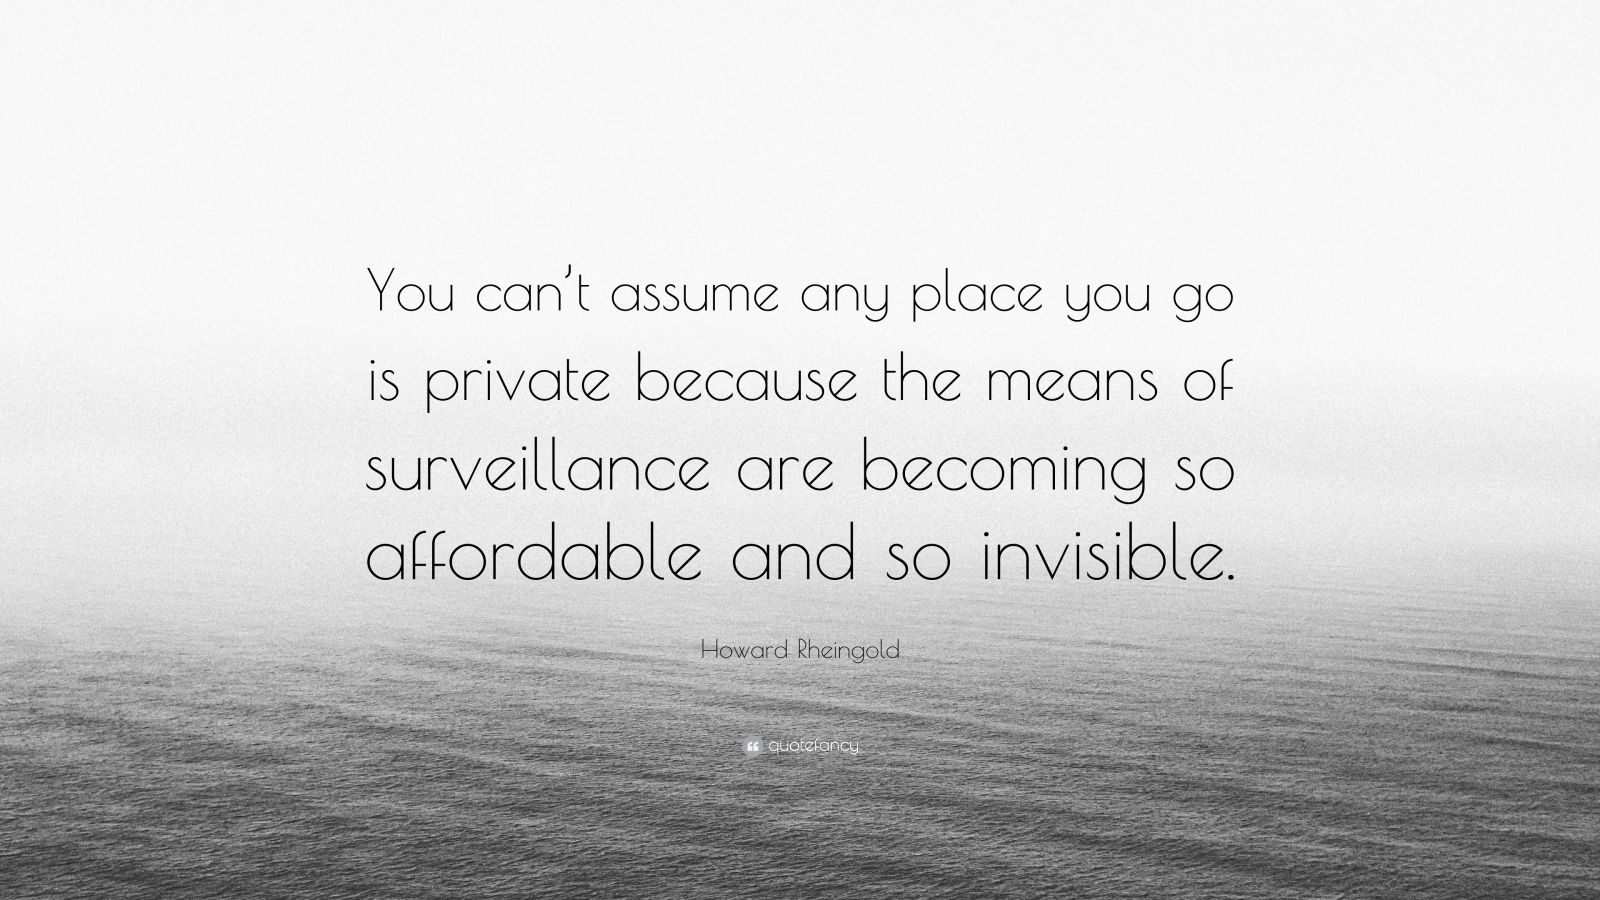 """Howard Rheingold Quote: """"You can't assume any place you go is private because the means of surveillance are becoming so affordable and so invisible."""""""